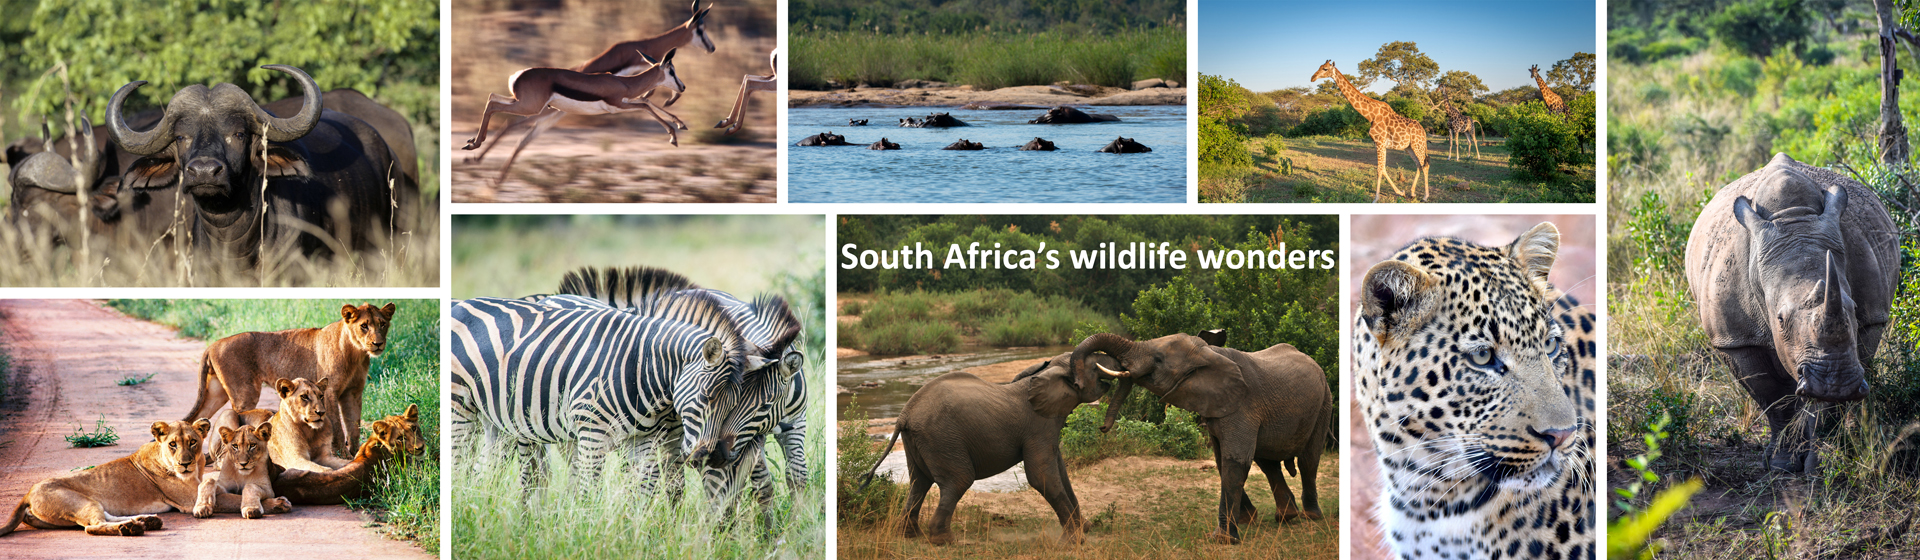 Wildlife wonders in South Africa